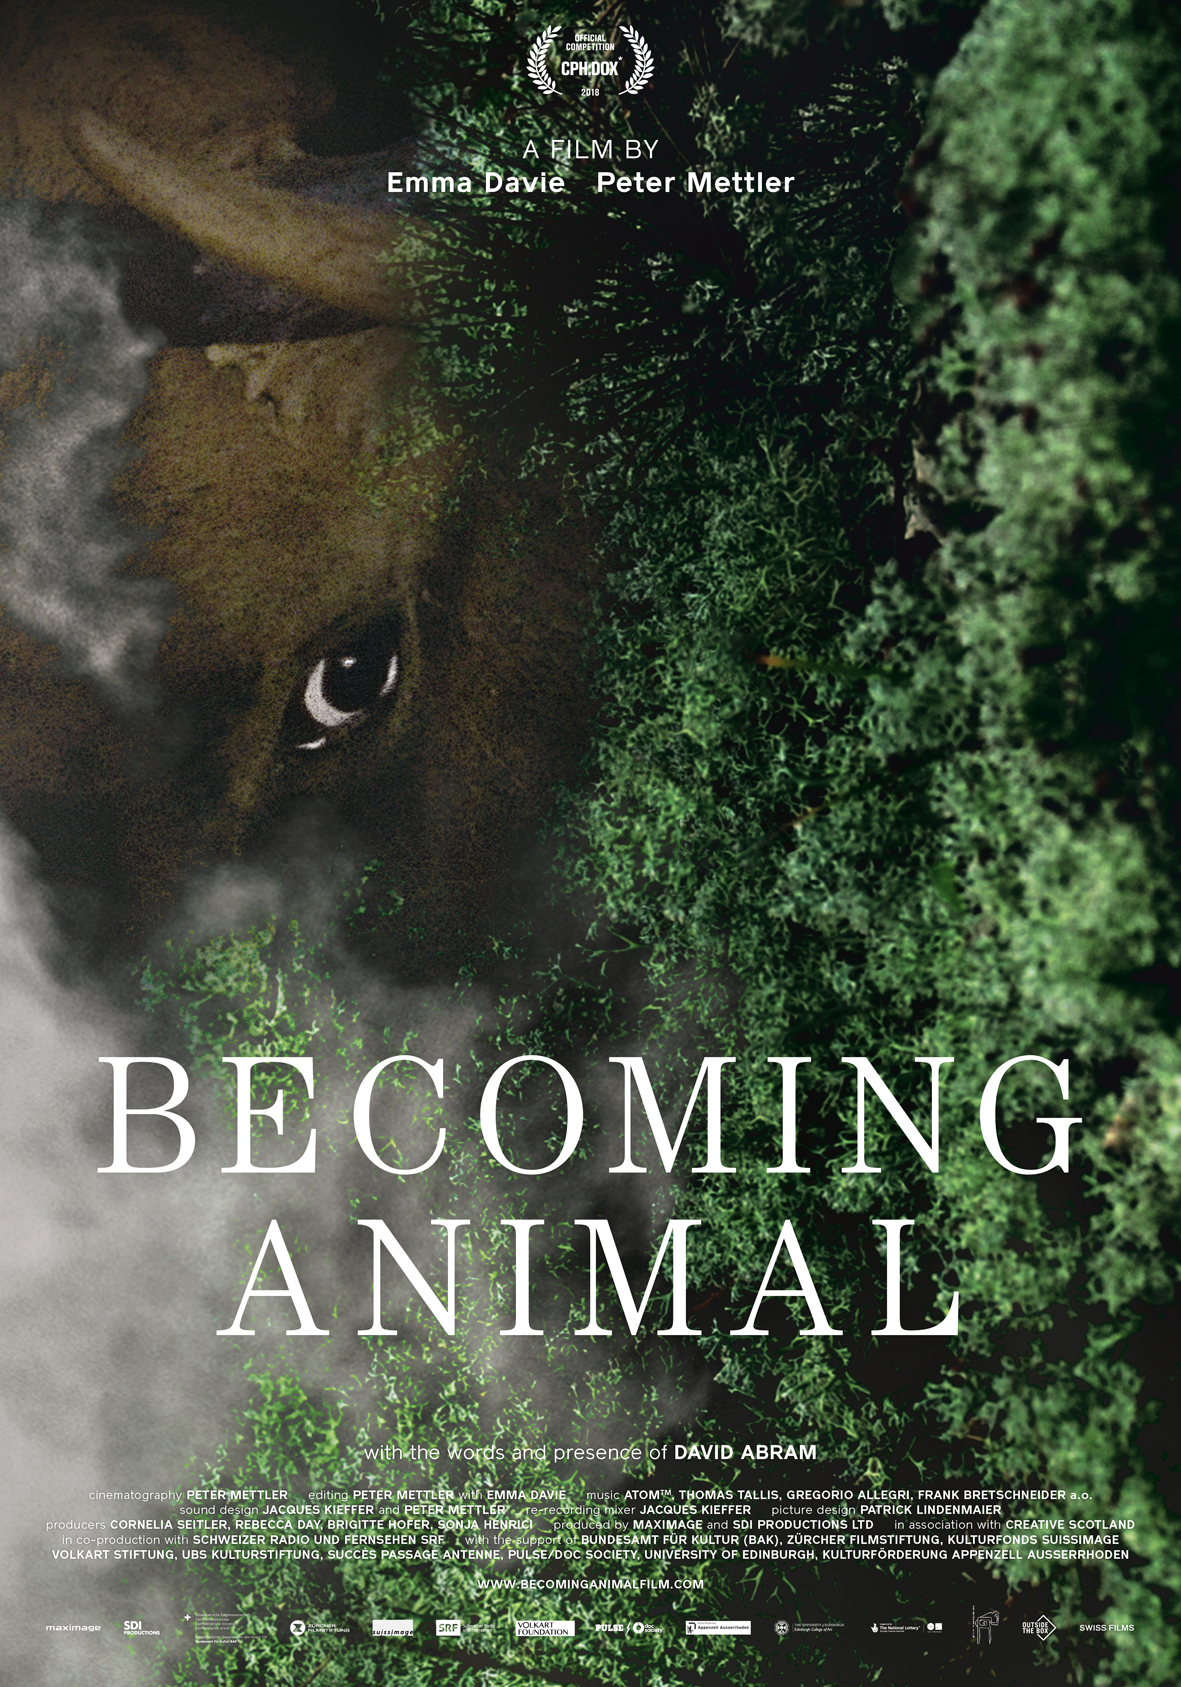 Becoming-Animal_Poster_Plot-100x70-V2-12.jpg